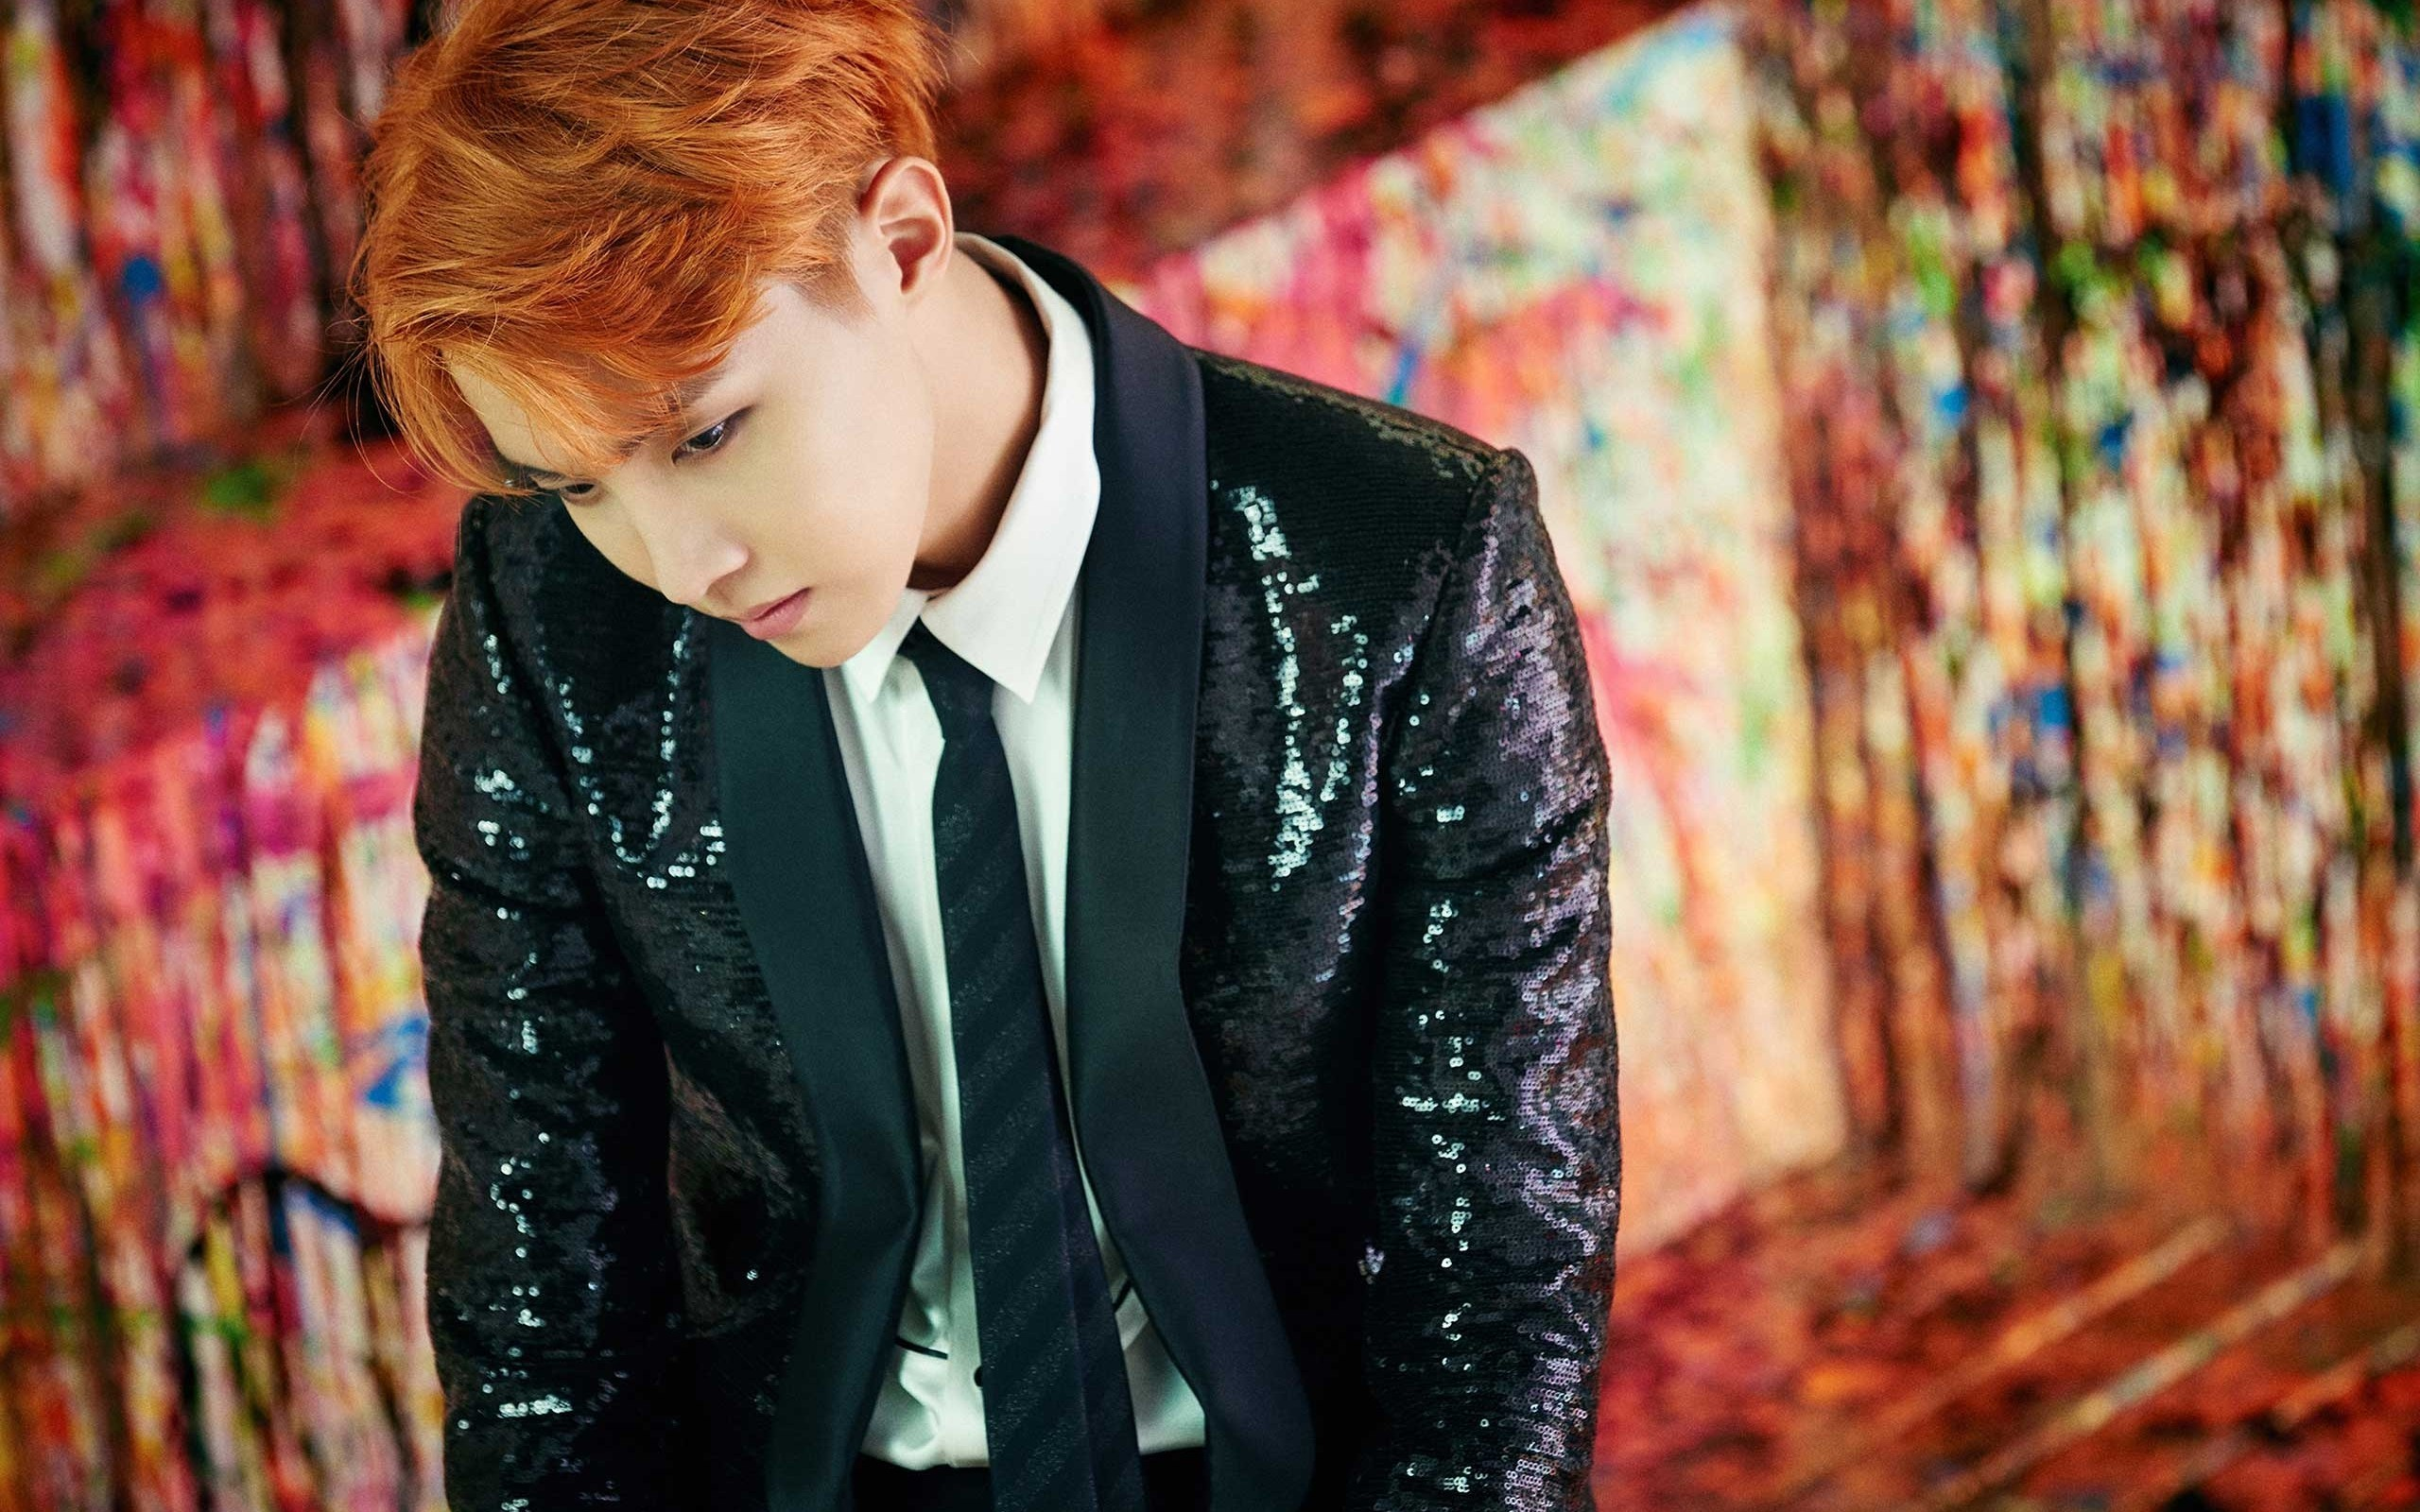 2560x1600 Bts, J-hope, South Korean Group, Bangtan Boys